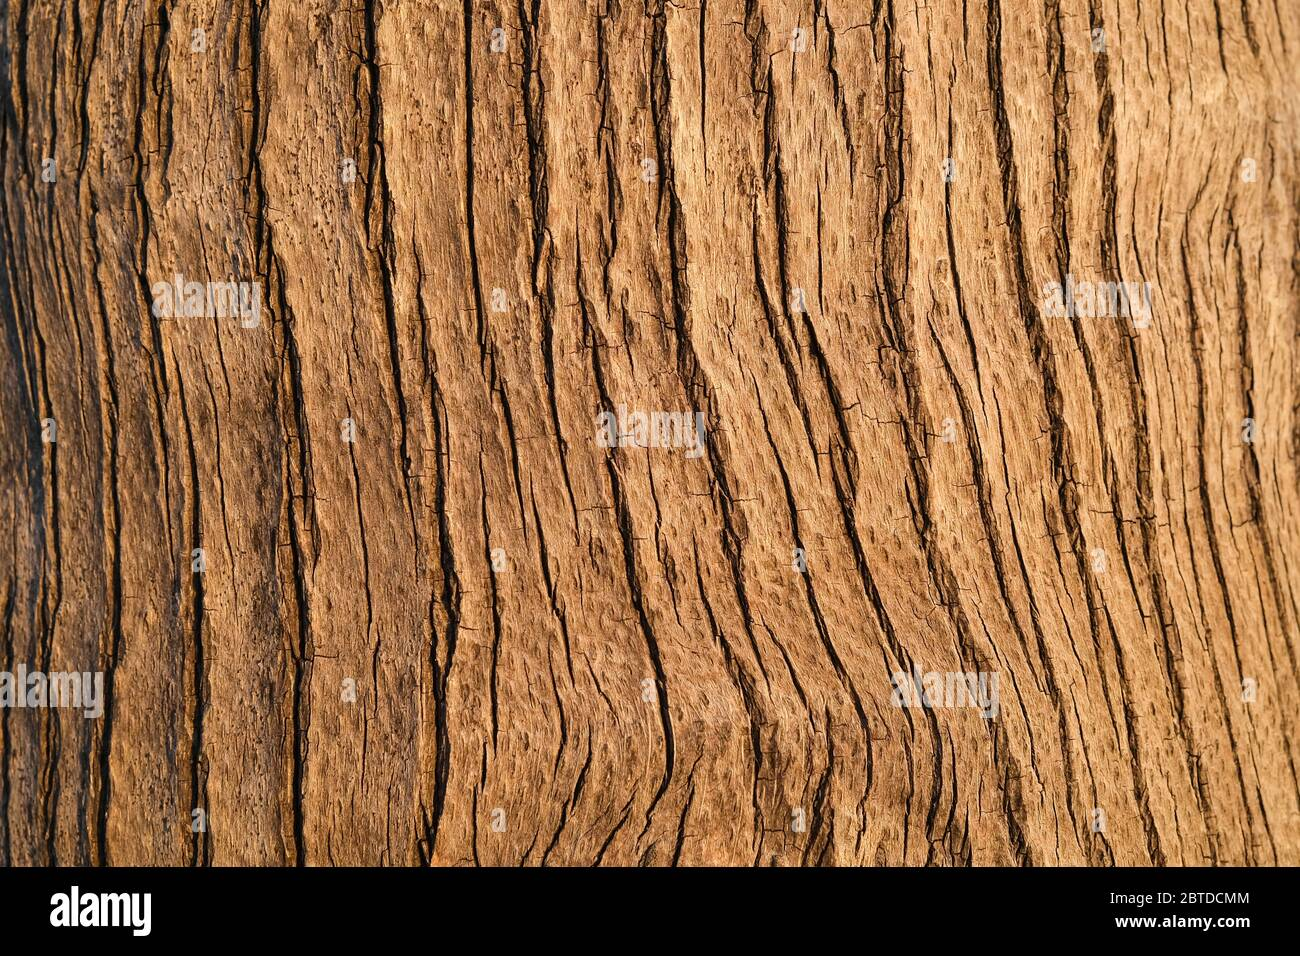 the-cracked-and-textured-bark-of-a-palm-